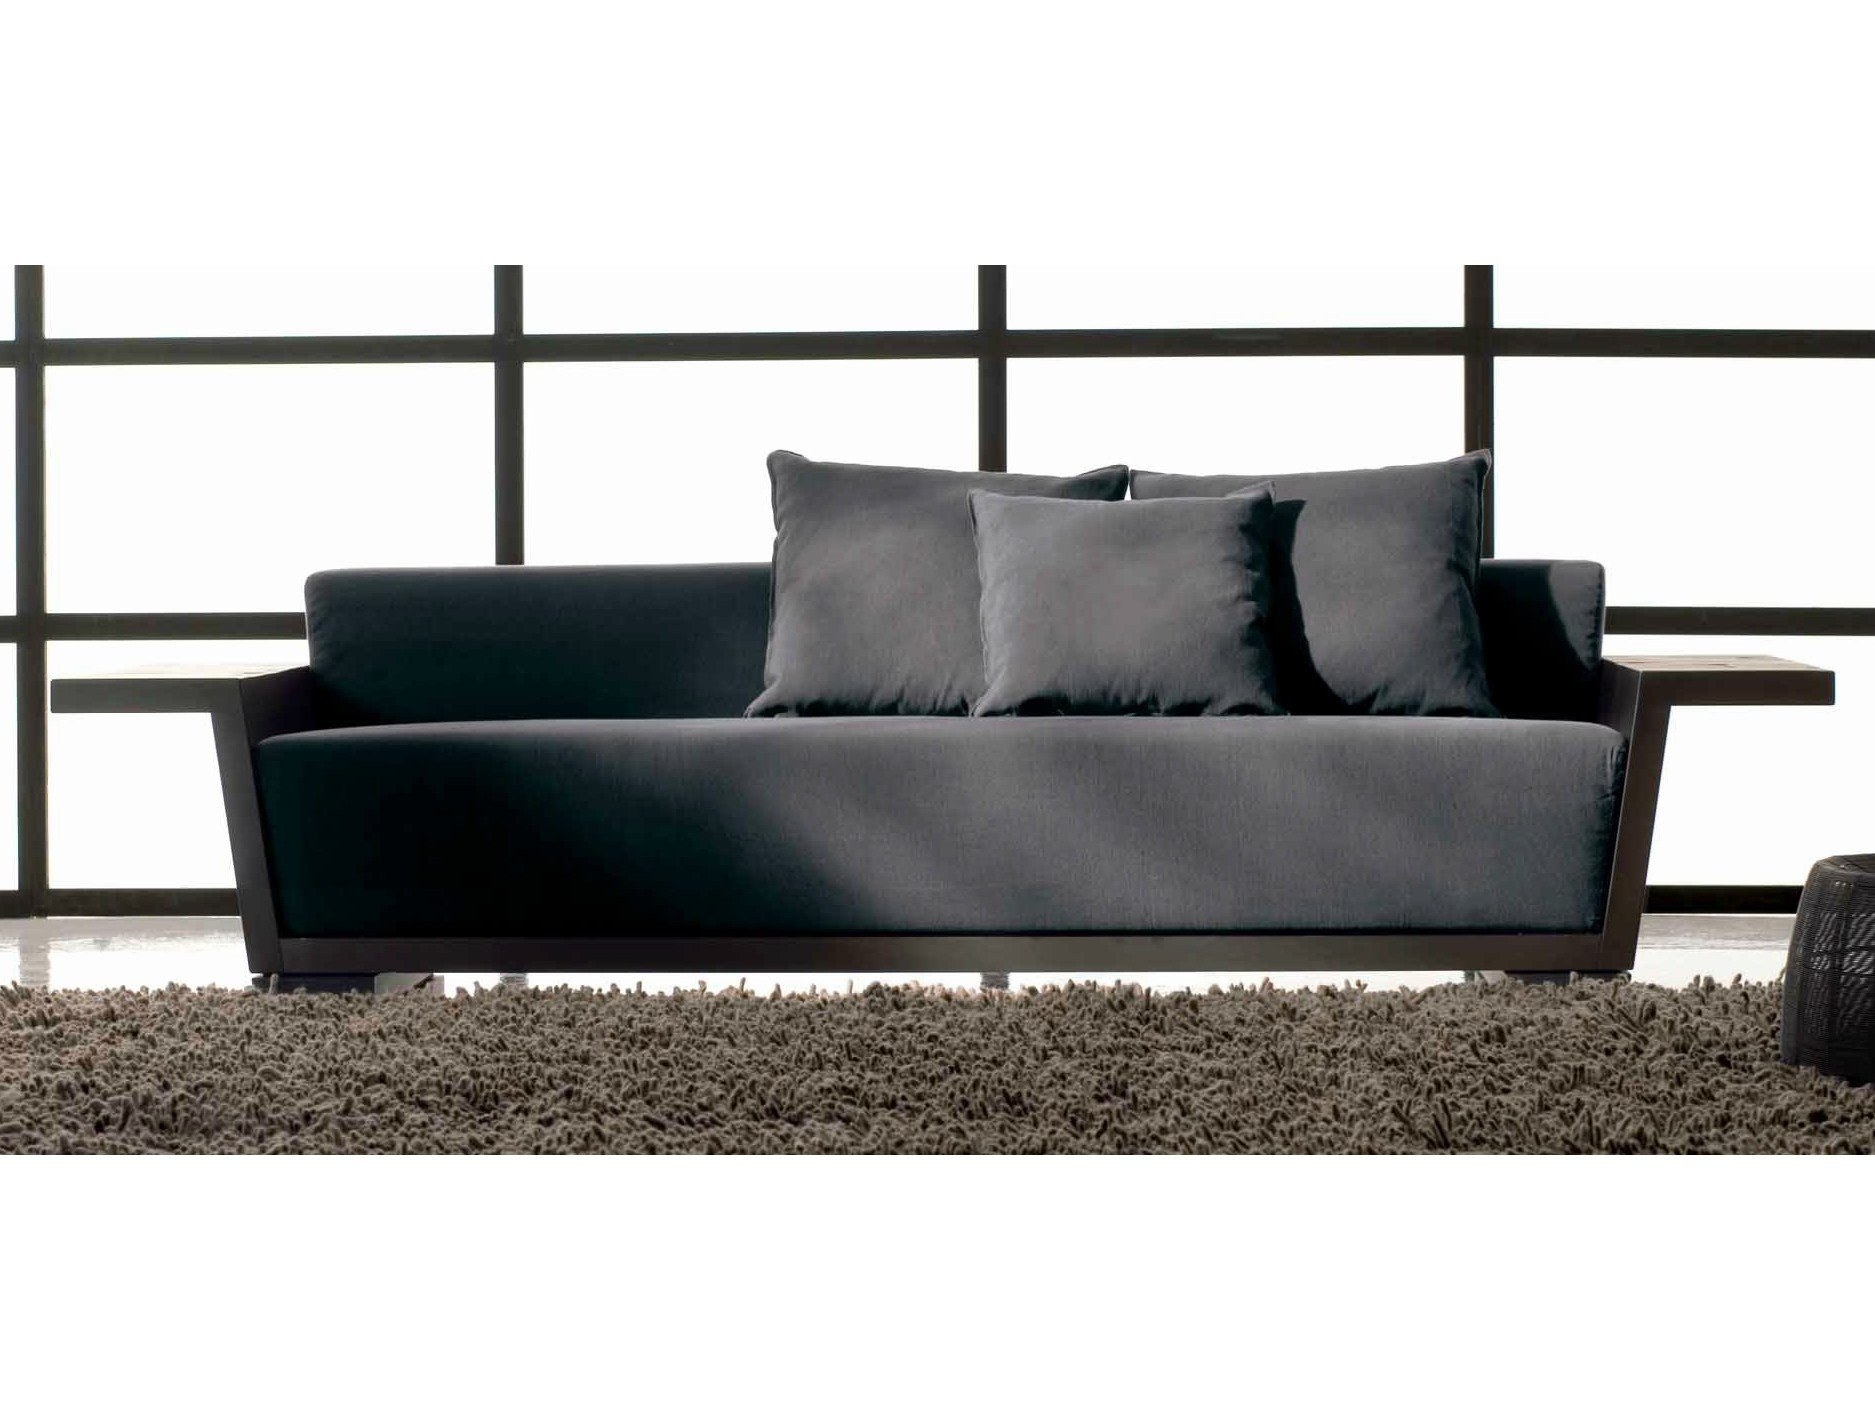 4 seater fabric sofa otto 109 otto collection by gervasoni. Black Bedroom Furniture Sets. Home Design Ideas